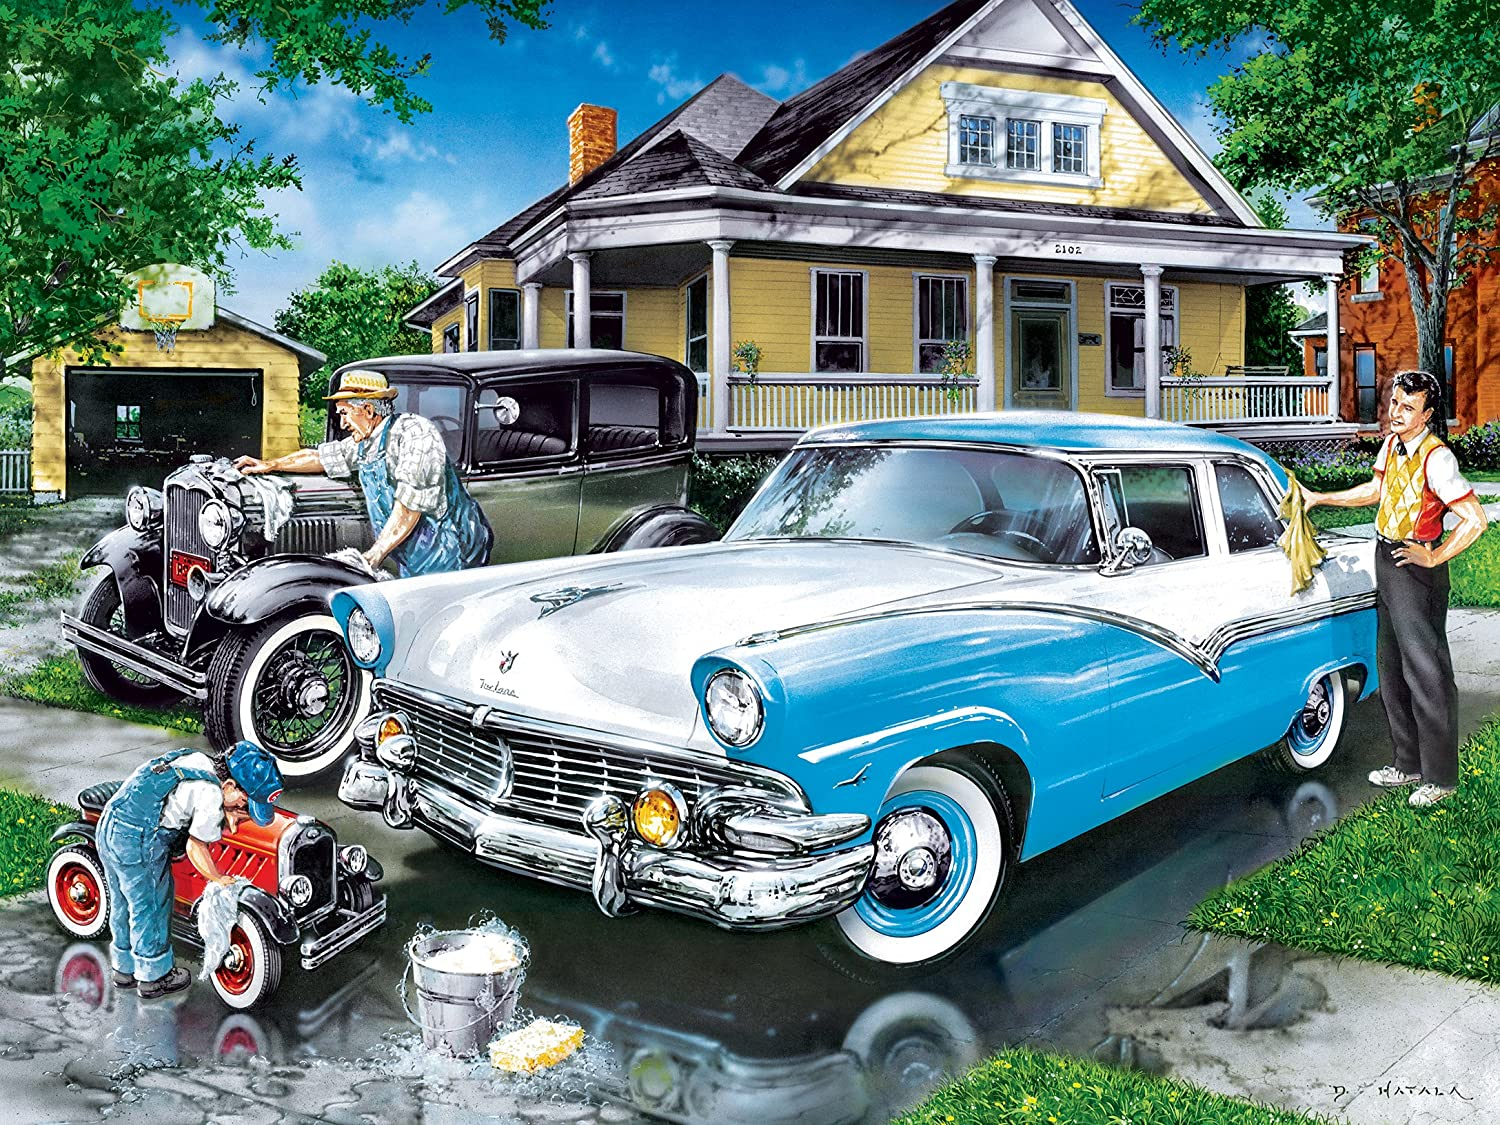 Amazon.com: MasterPieces Family Hour Three Generations Father, Son & Cars Jigsaw Puzzle, 400-Piece: Toys & Games